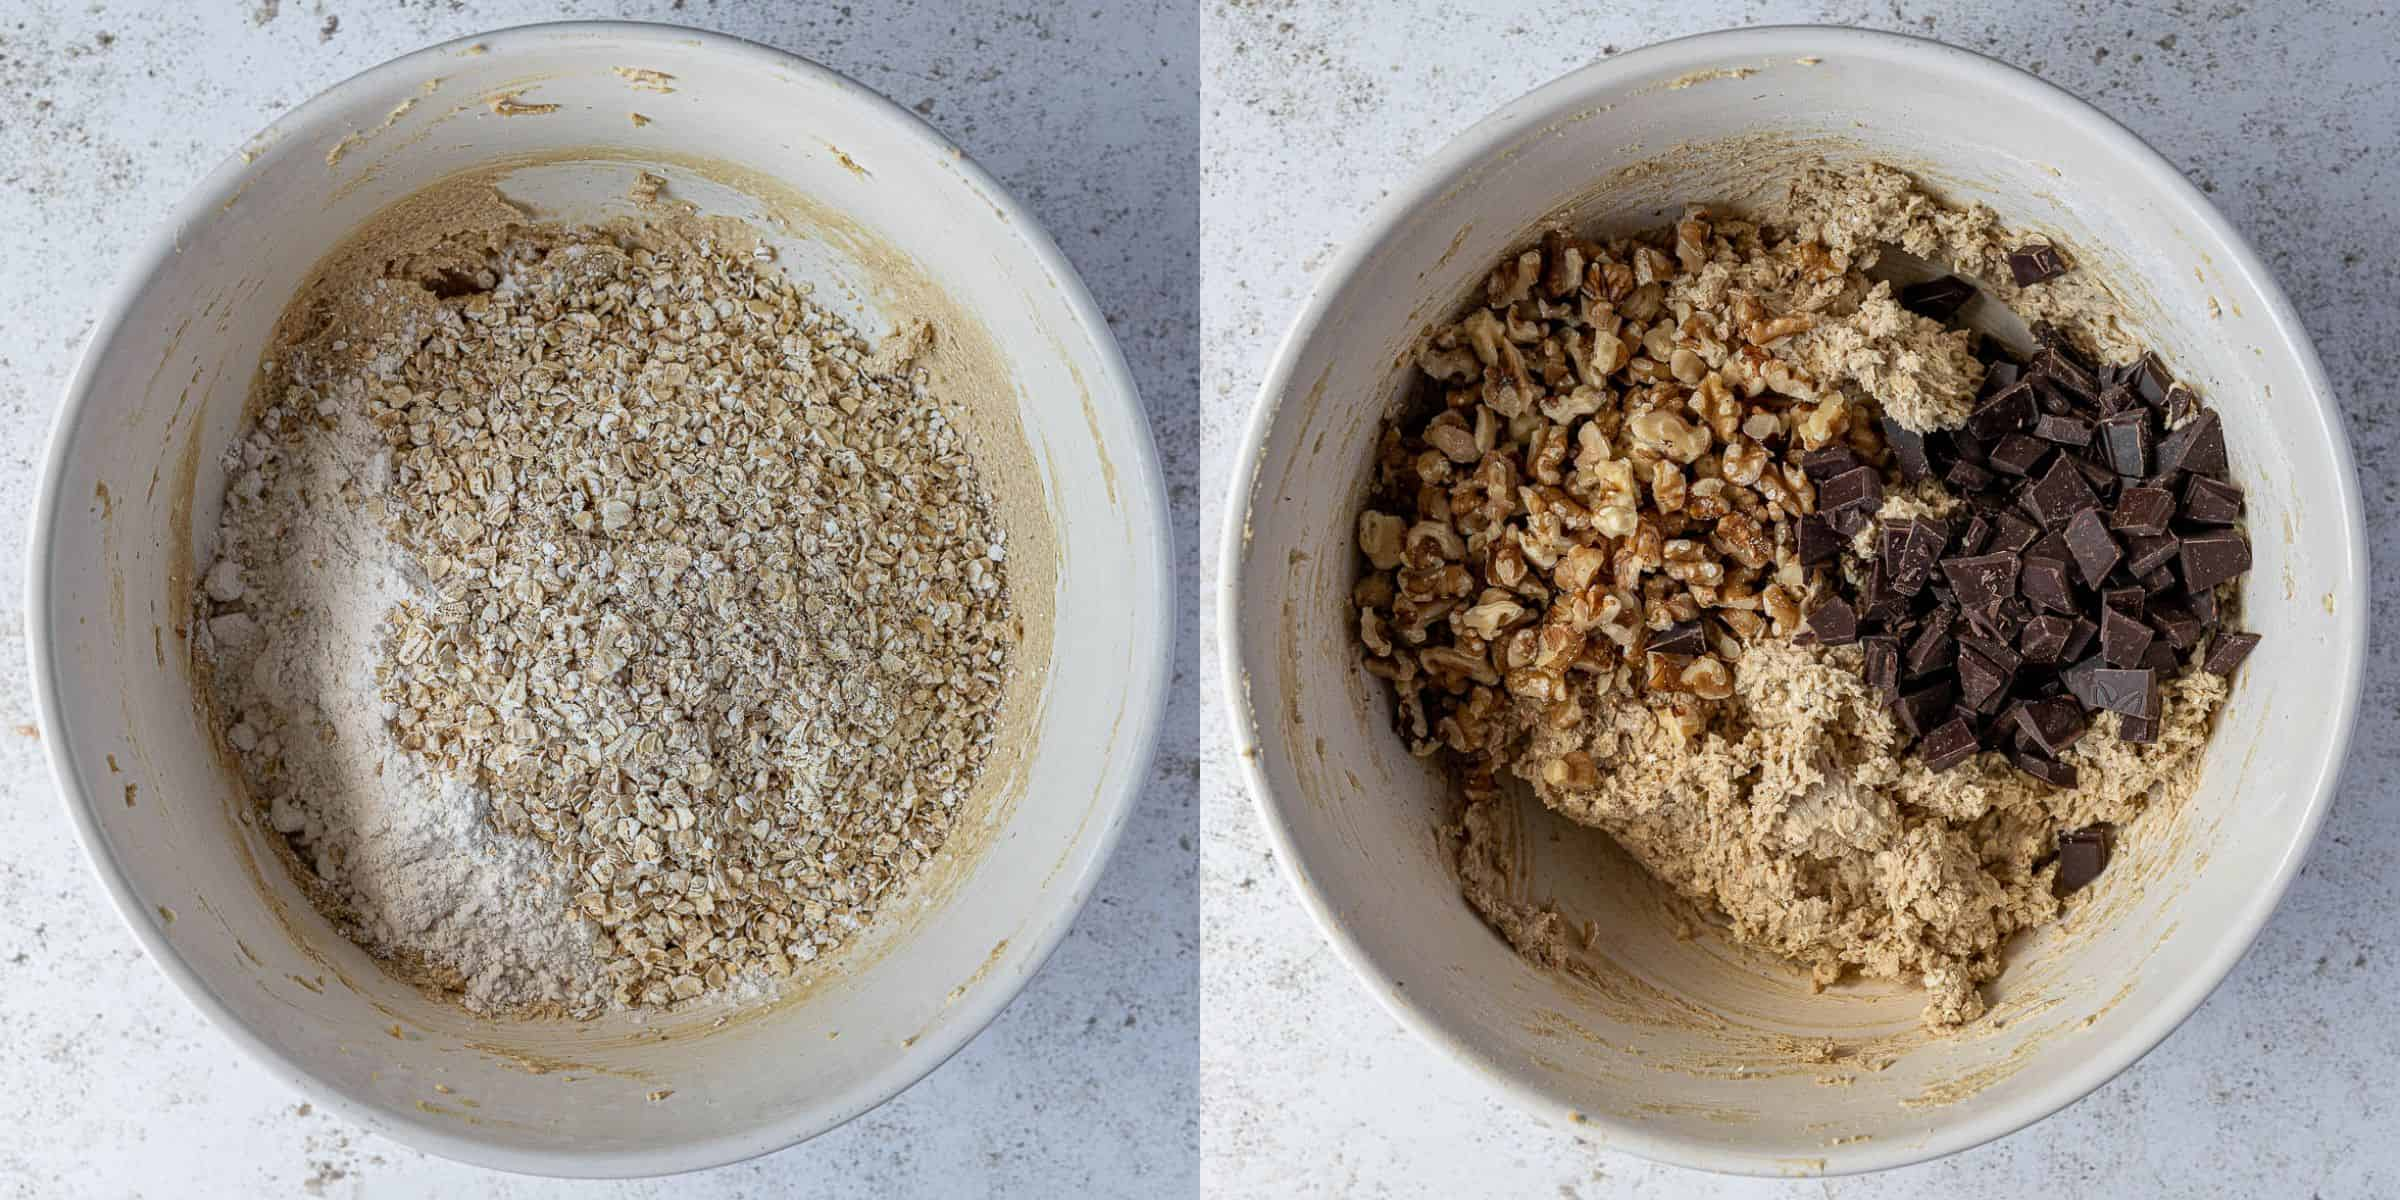 Step 3, a two image collage of adding the flour and oats, and the chocolate and walnuts.